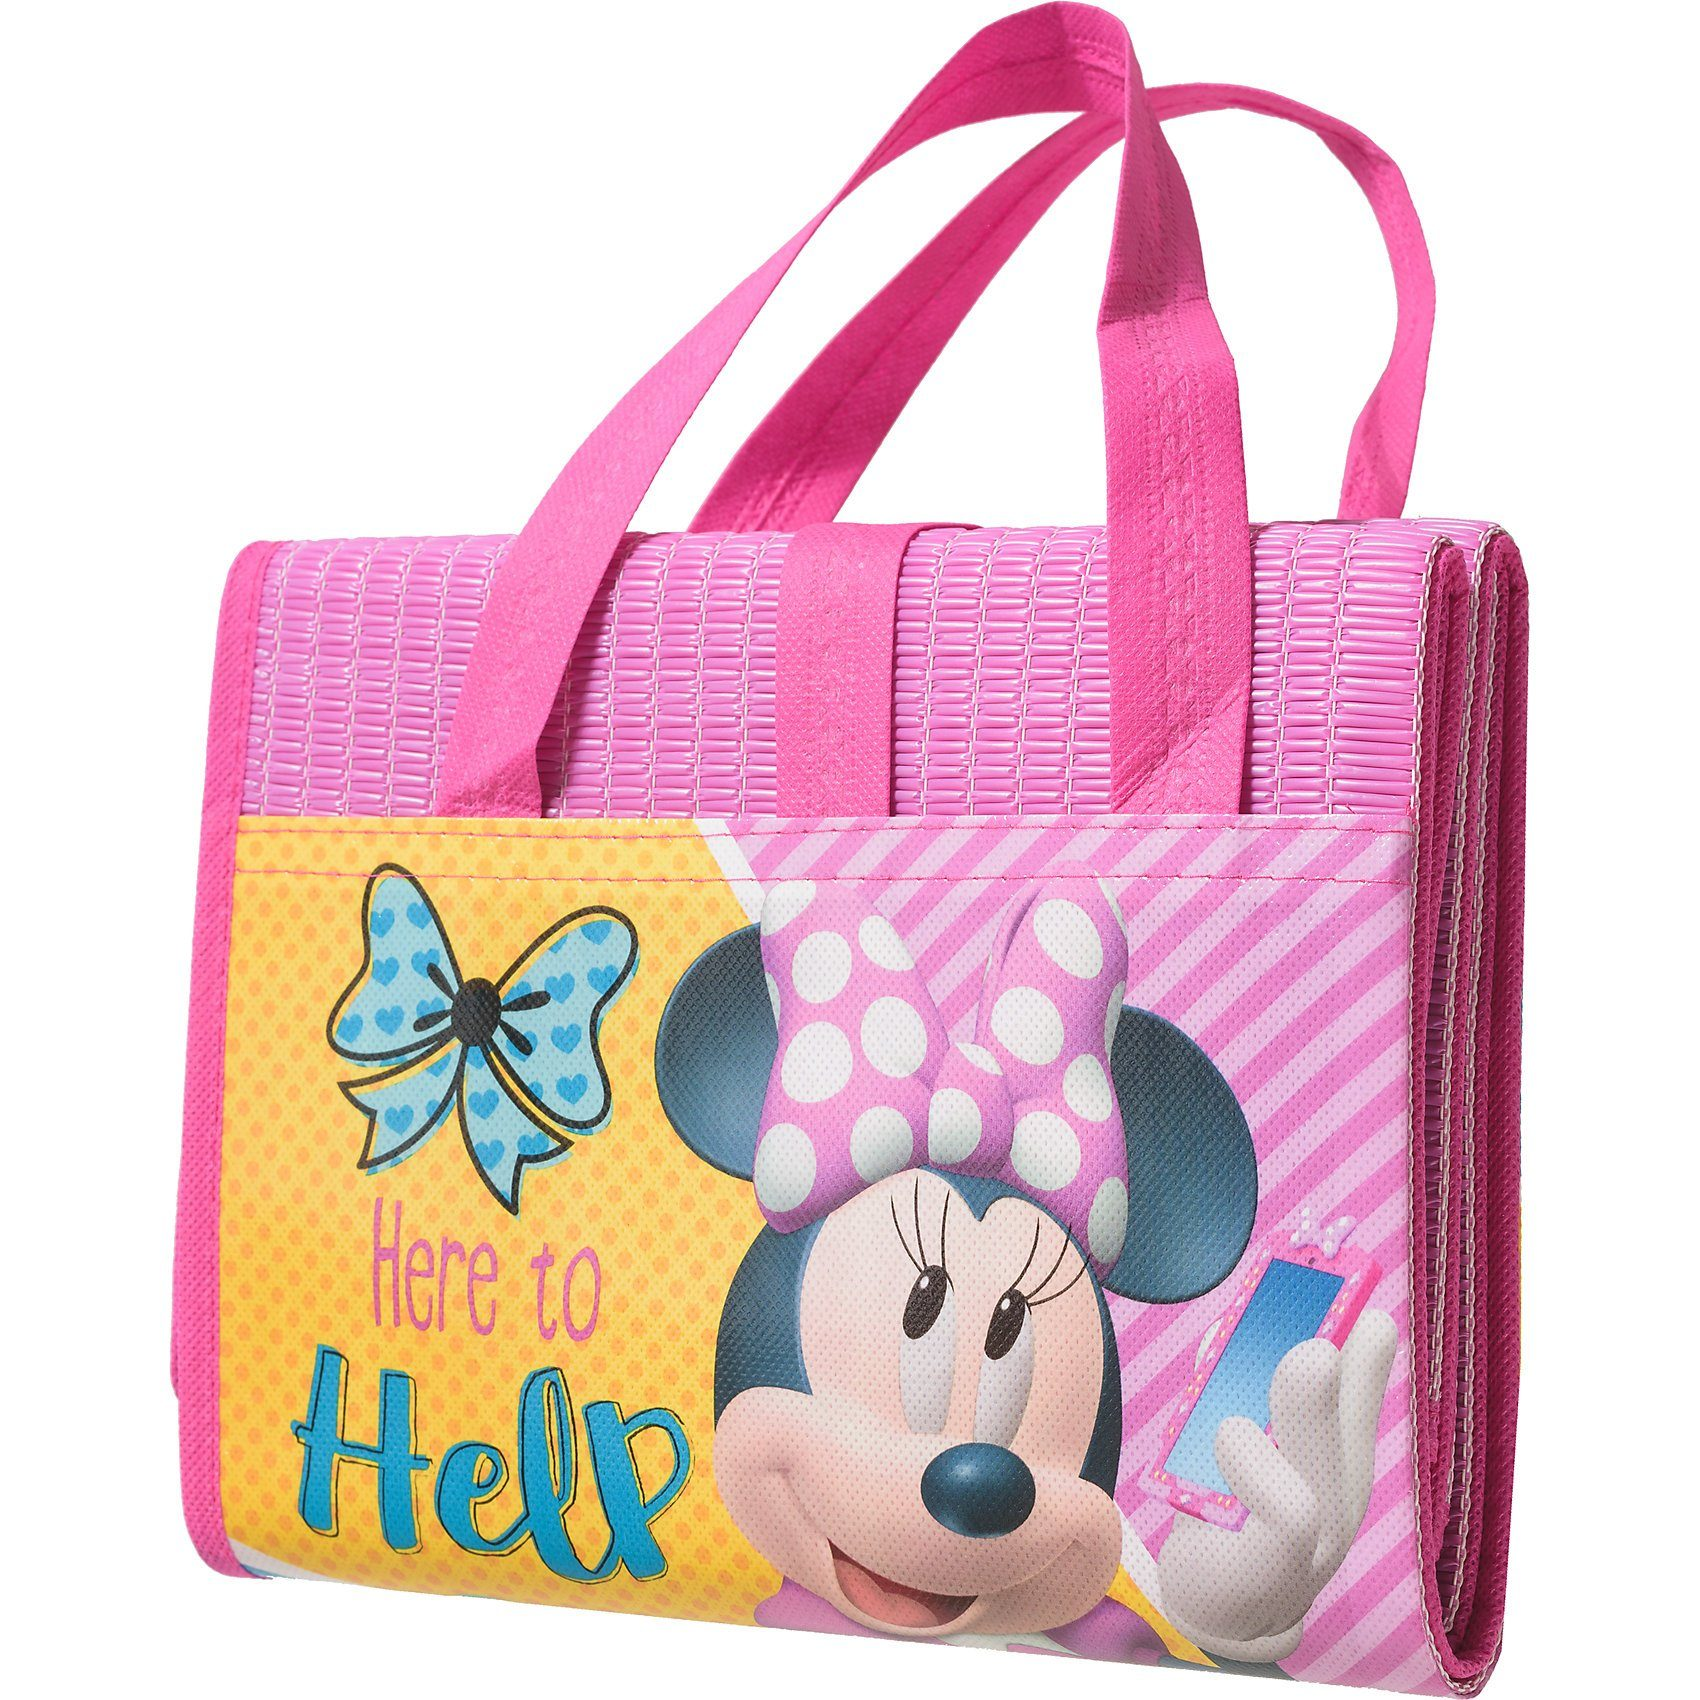 Strand- und Badematte, faltbar, Disney Minnie Mouse, 75 x 15